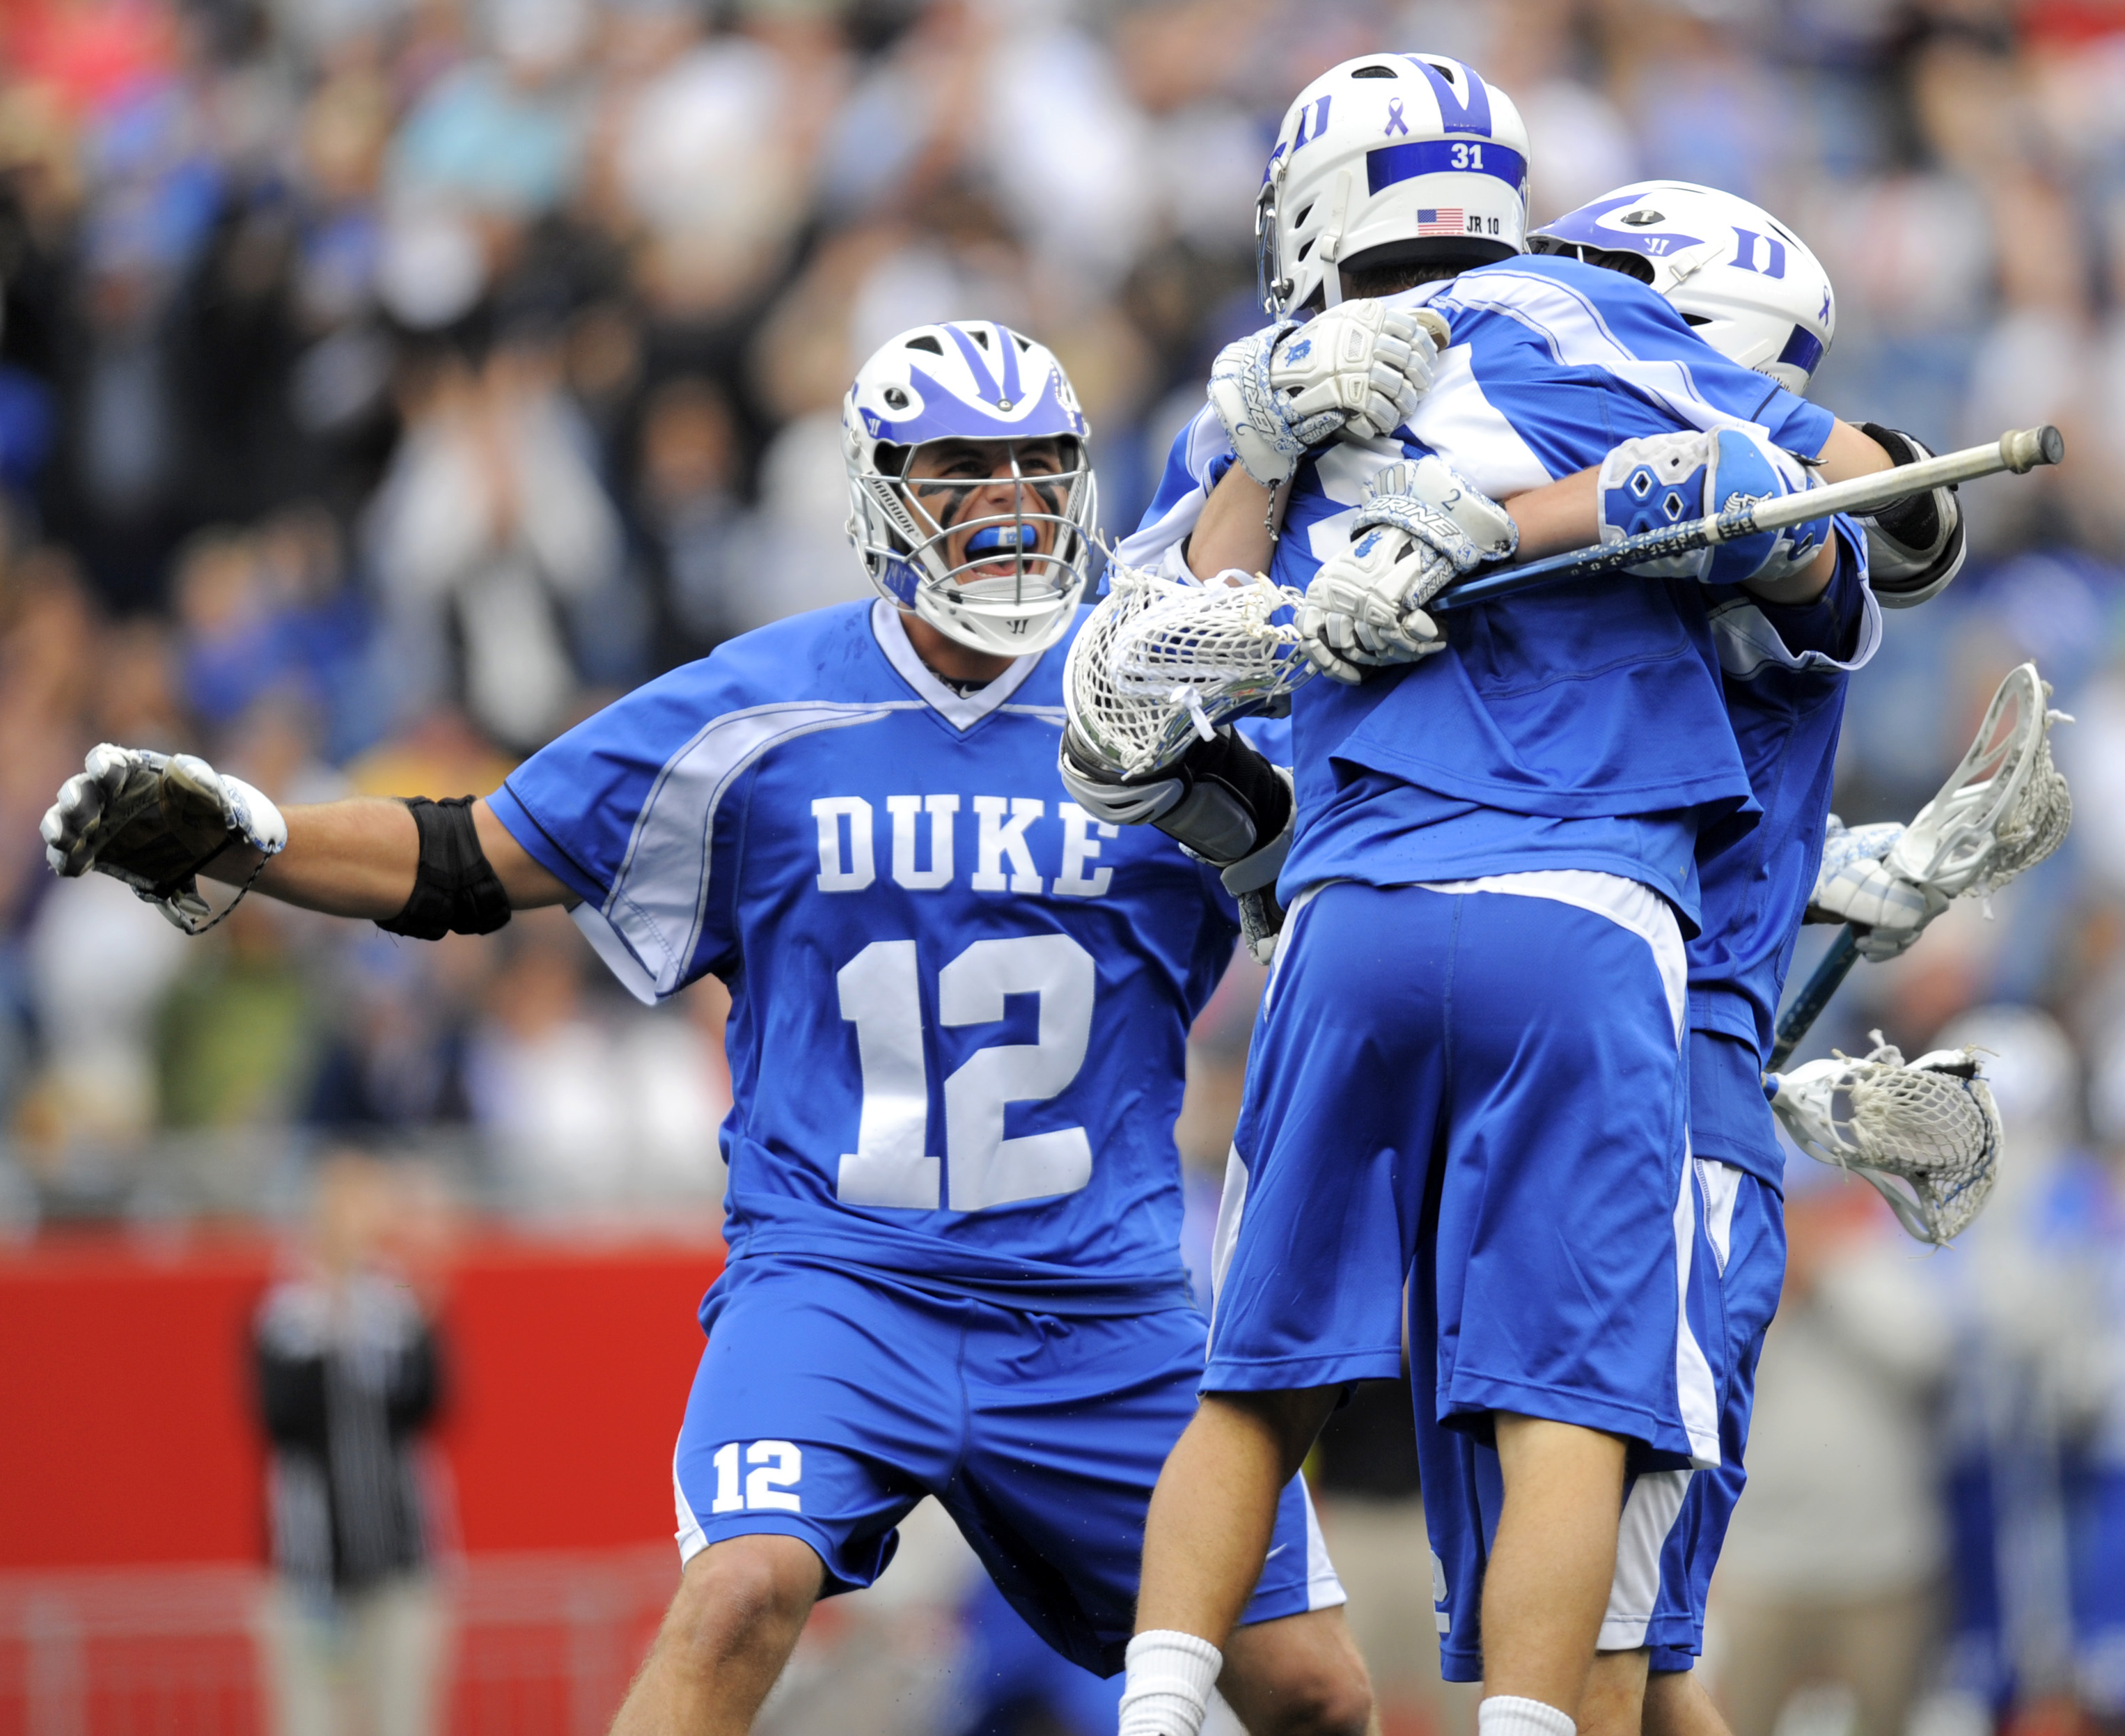 the No 3 overall seed in this years NCAA mens lacrosse tournament 3052x2493